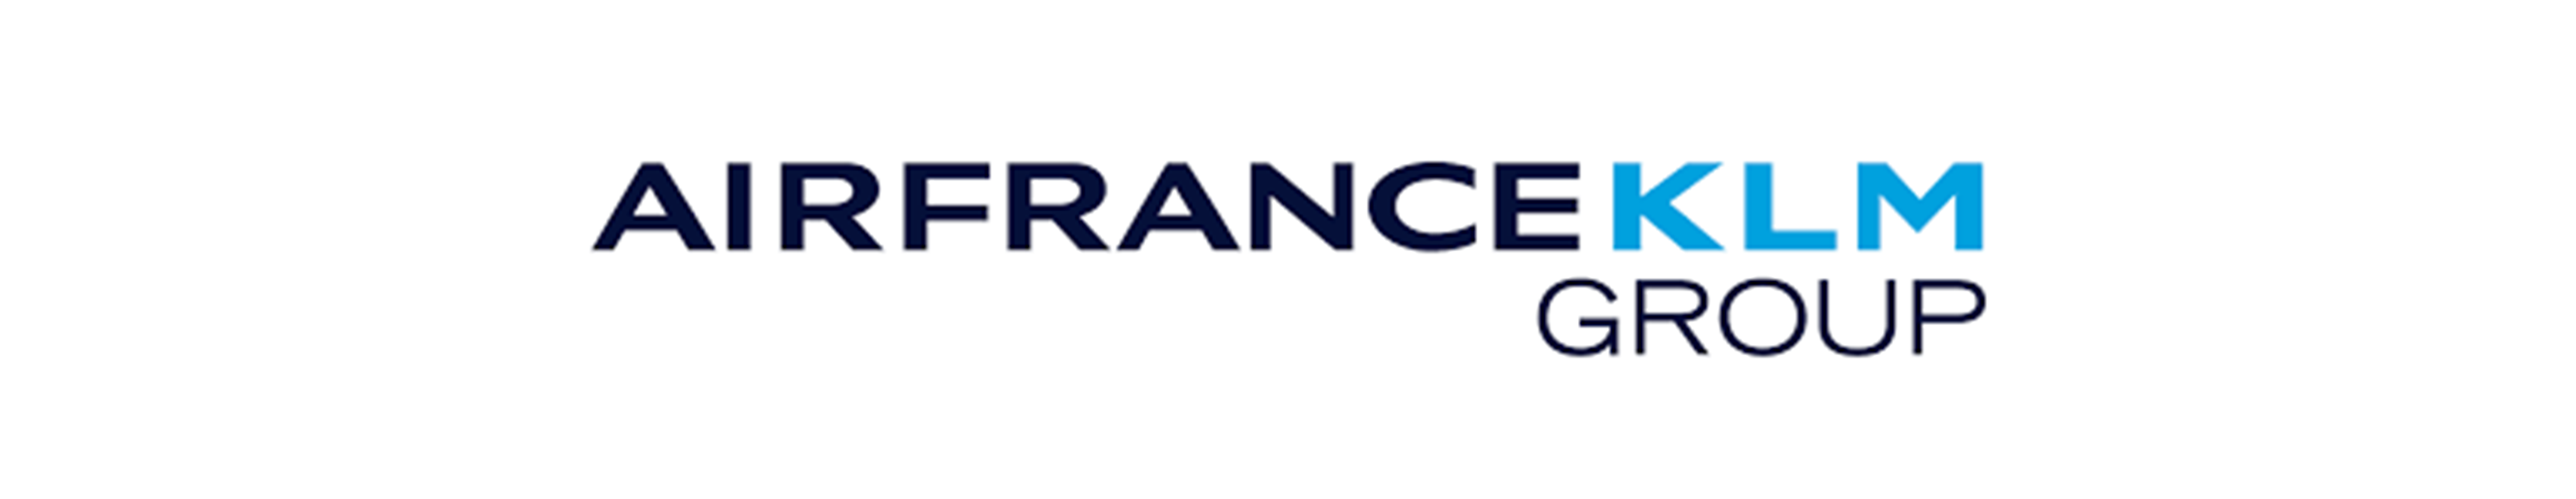 Logo group airfrance klm